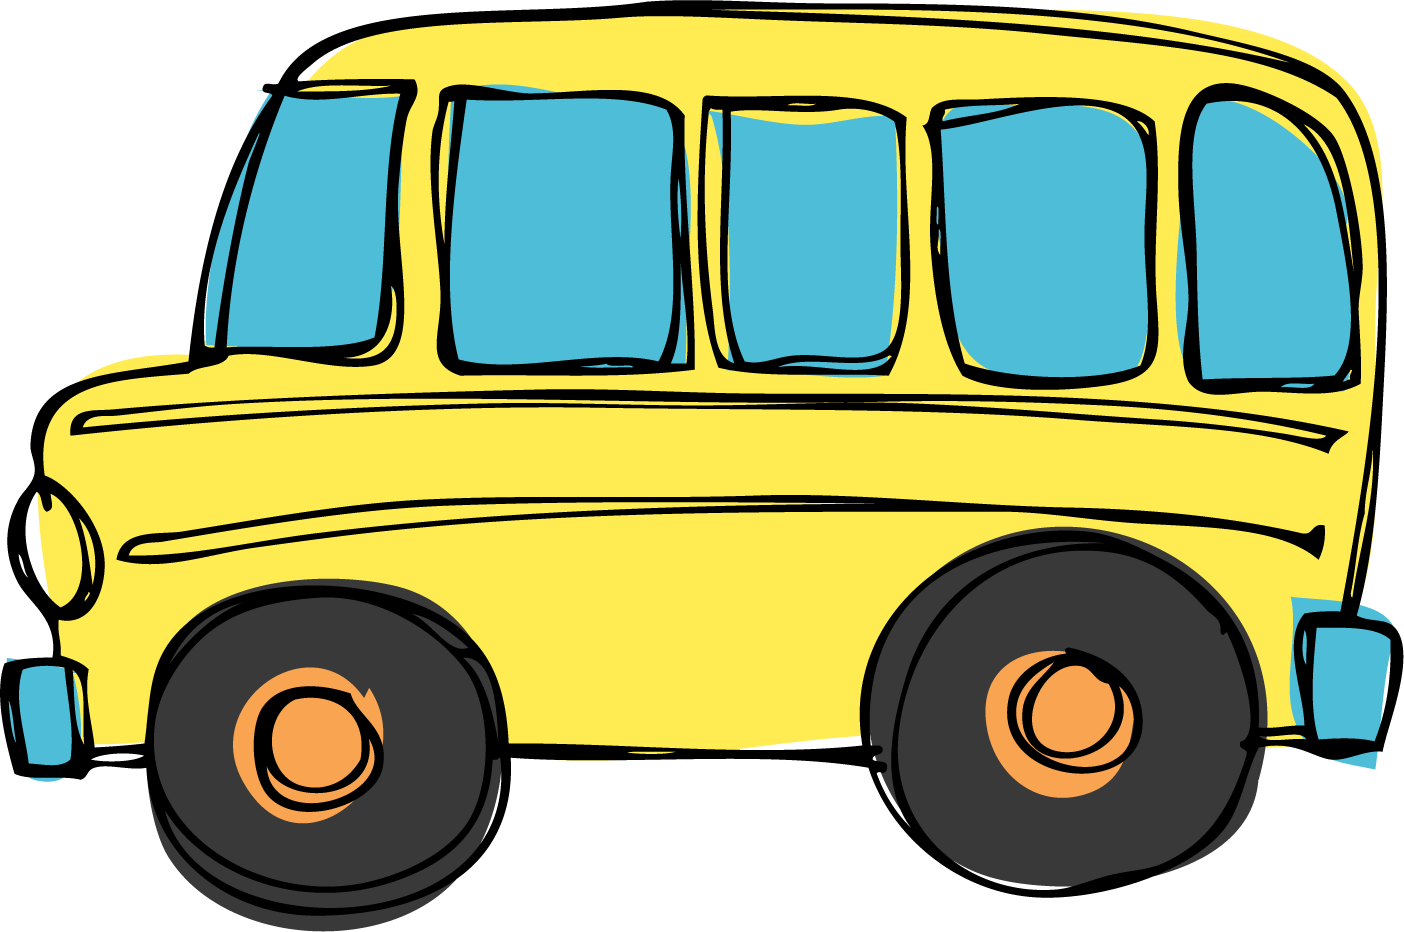 School transportation clipart transparent stock Superman clipart border - ClipartFox transparent stock